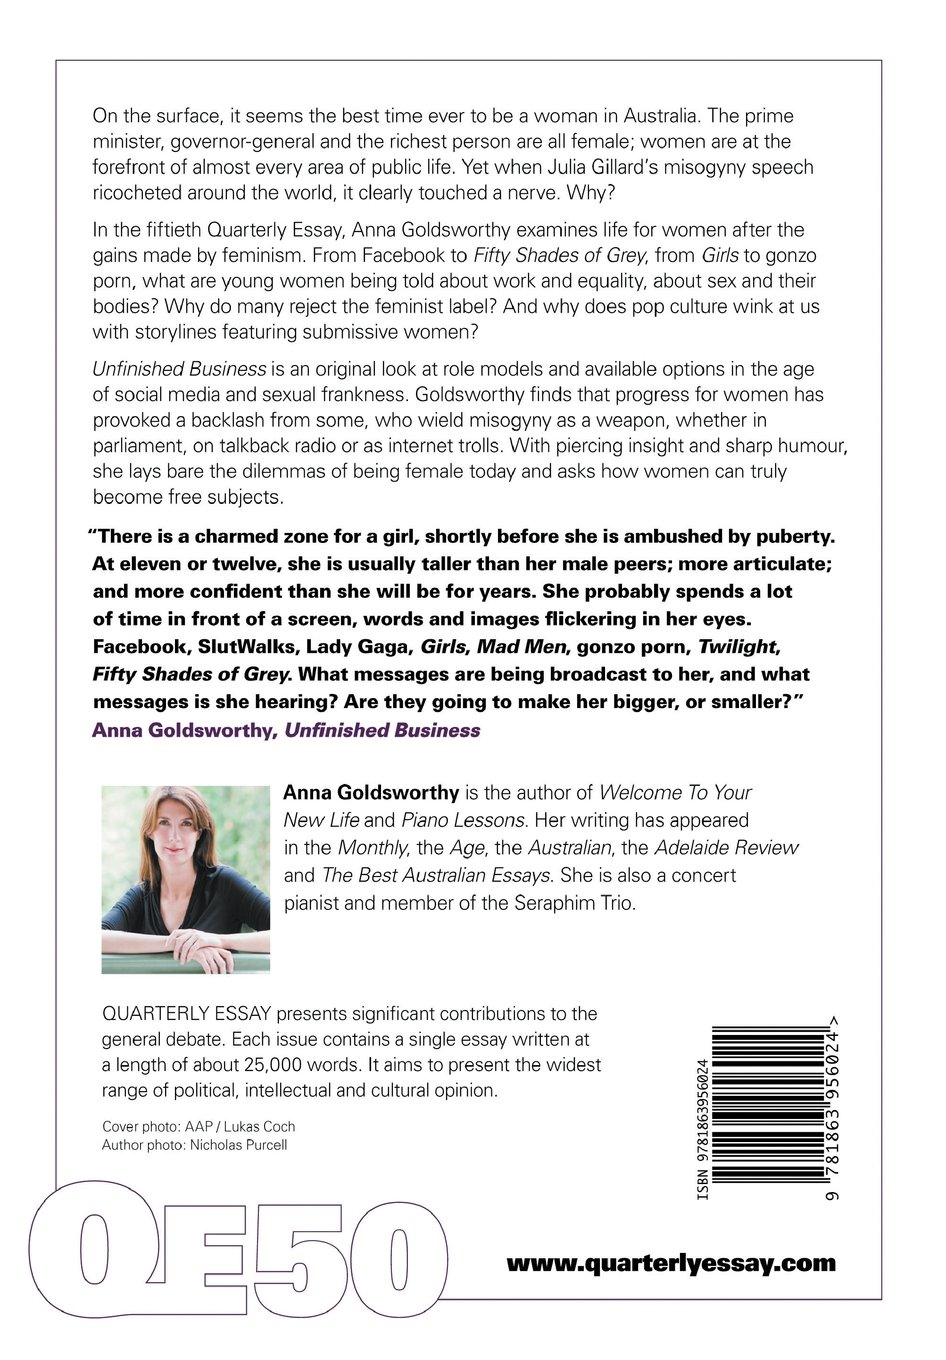 quarterly essay 50 unfinished business sex dom and misogyny quarterly essay 50 unfinished business sex dom and misogyny anna goldsworthy 9781863956024 com books